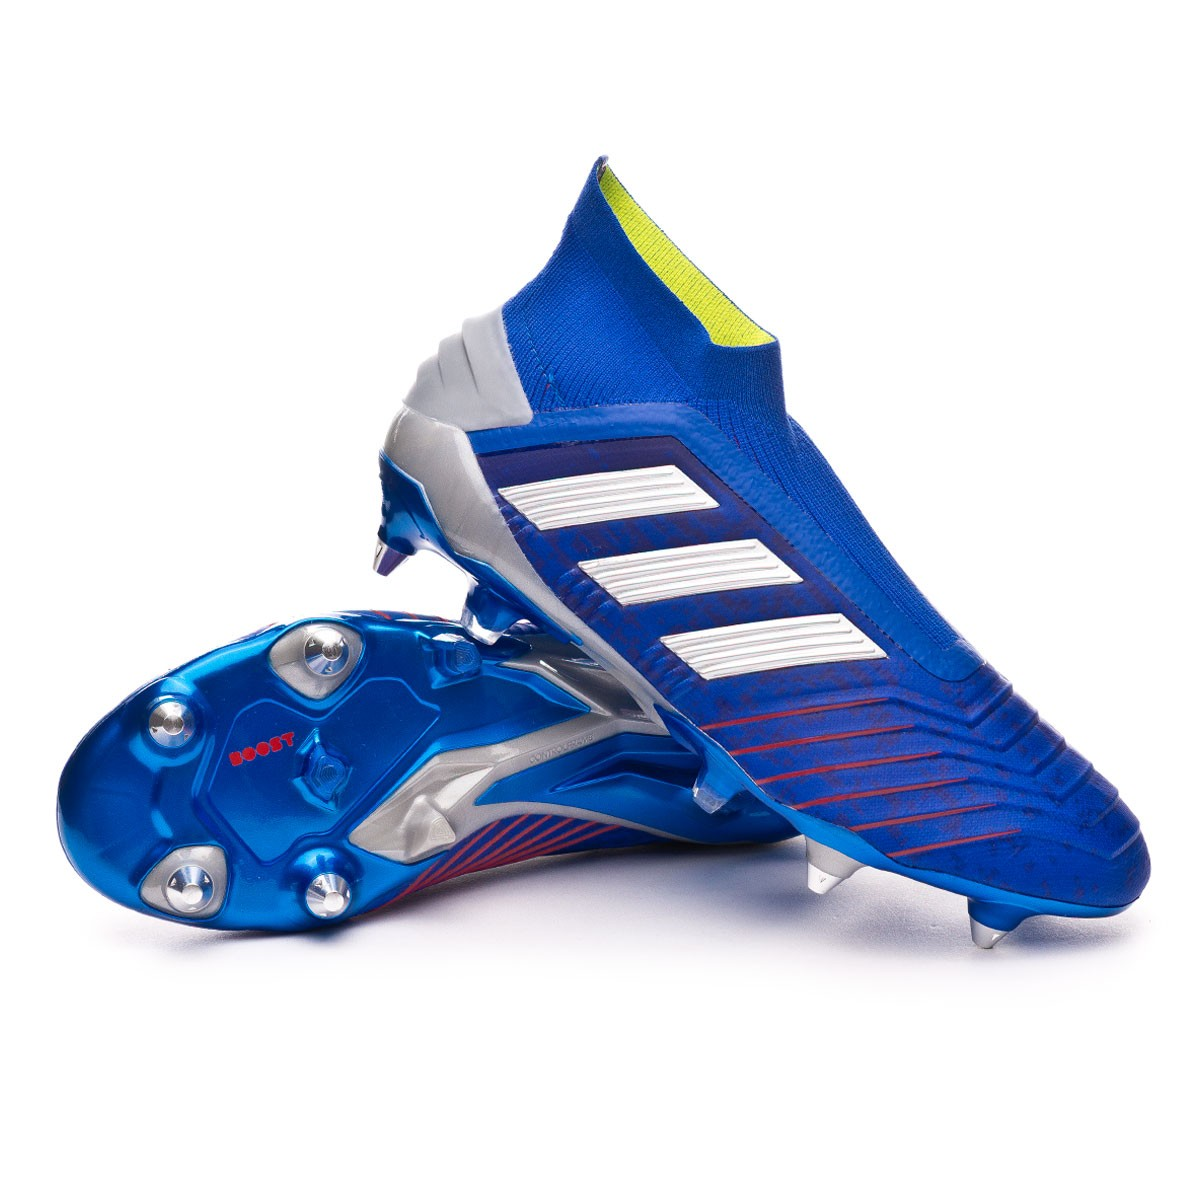 Chaussure De Foot Adidas Predator 19 Sg Bold Blue Silver Metallic Active Red Boutique De Football Futbol Emotion